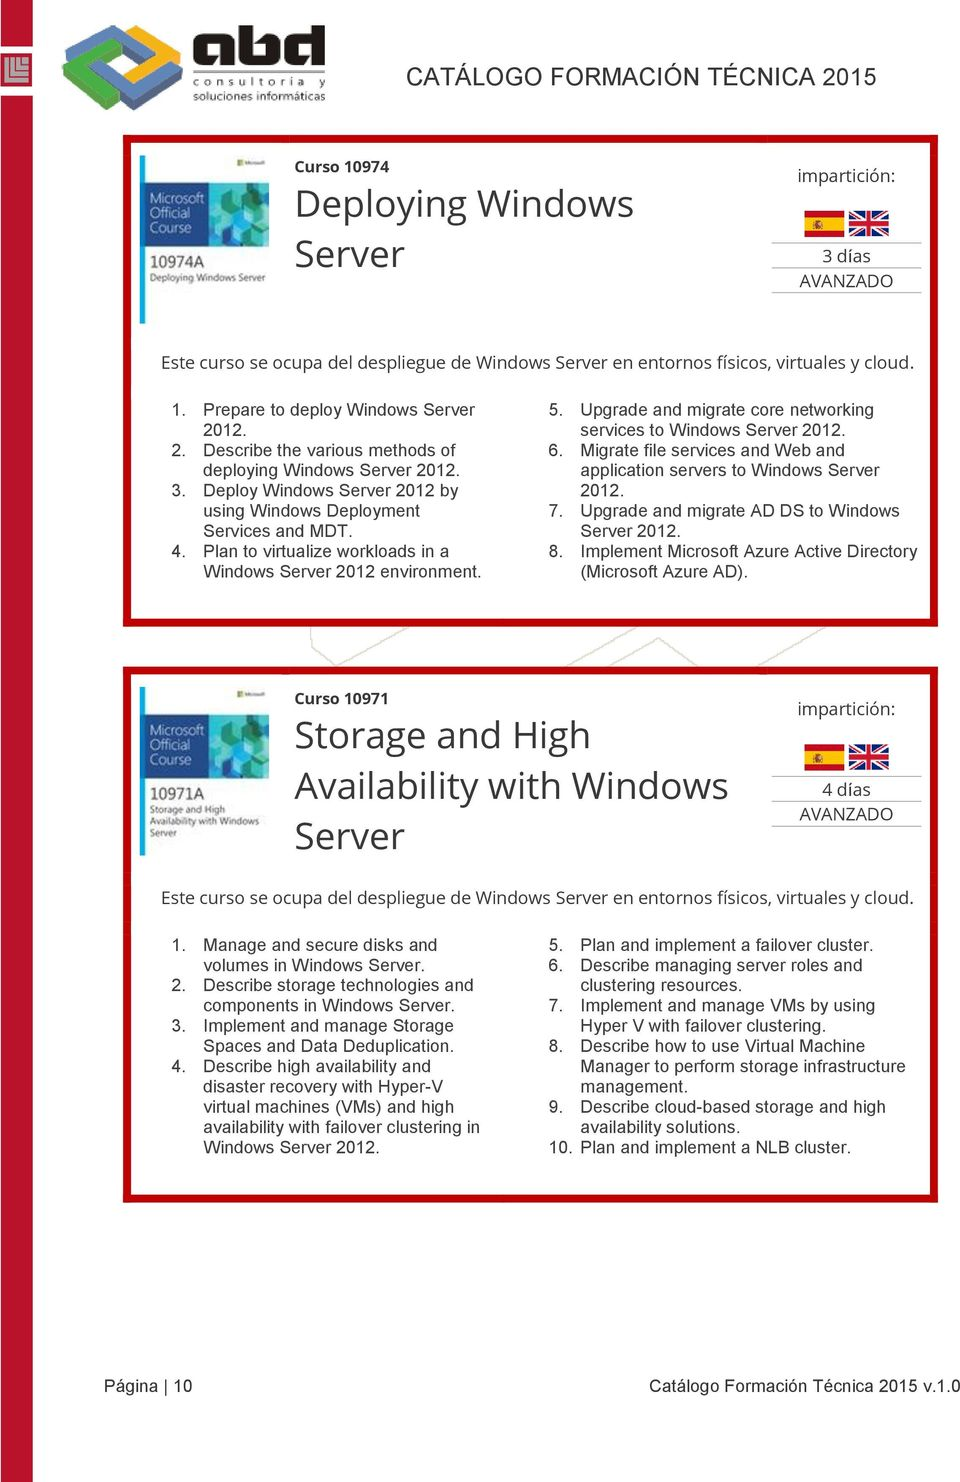 Plan to virtualize workloads in a Windows Server 2012 environment. 5. Upgrade and migrate core networking services to Windows Server 2012. 6.